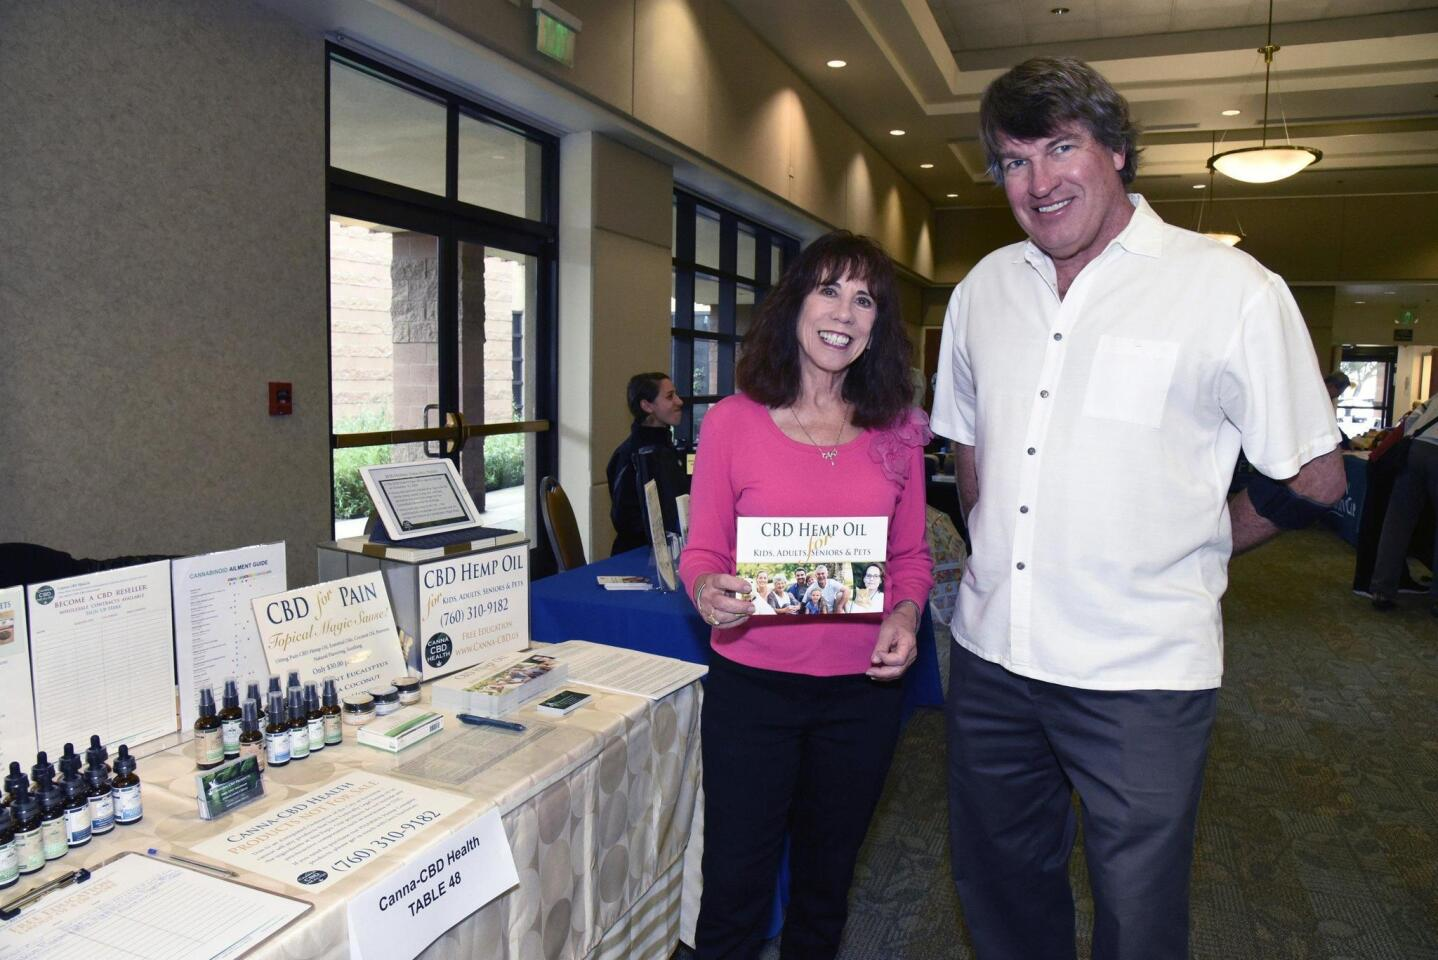 Encinitas Senior Expo